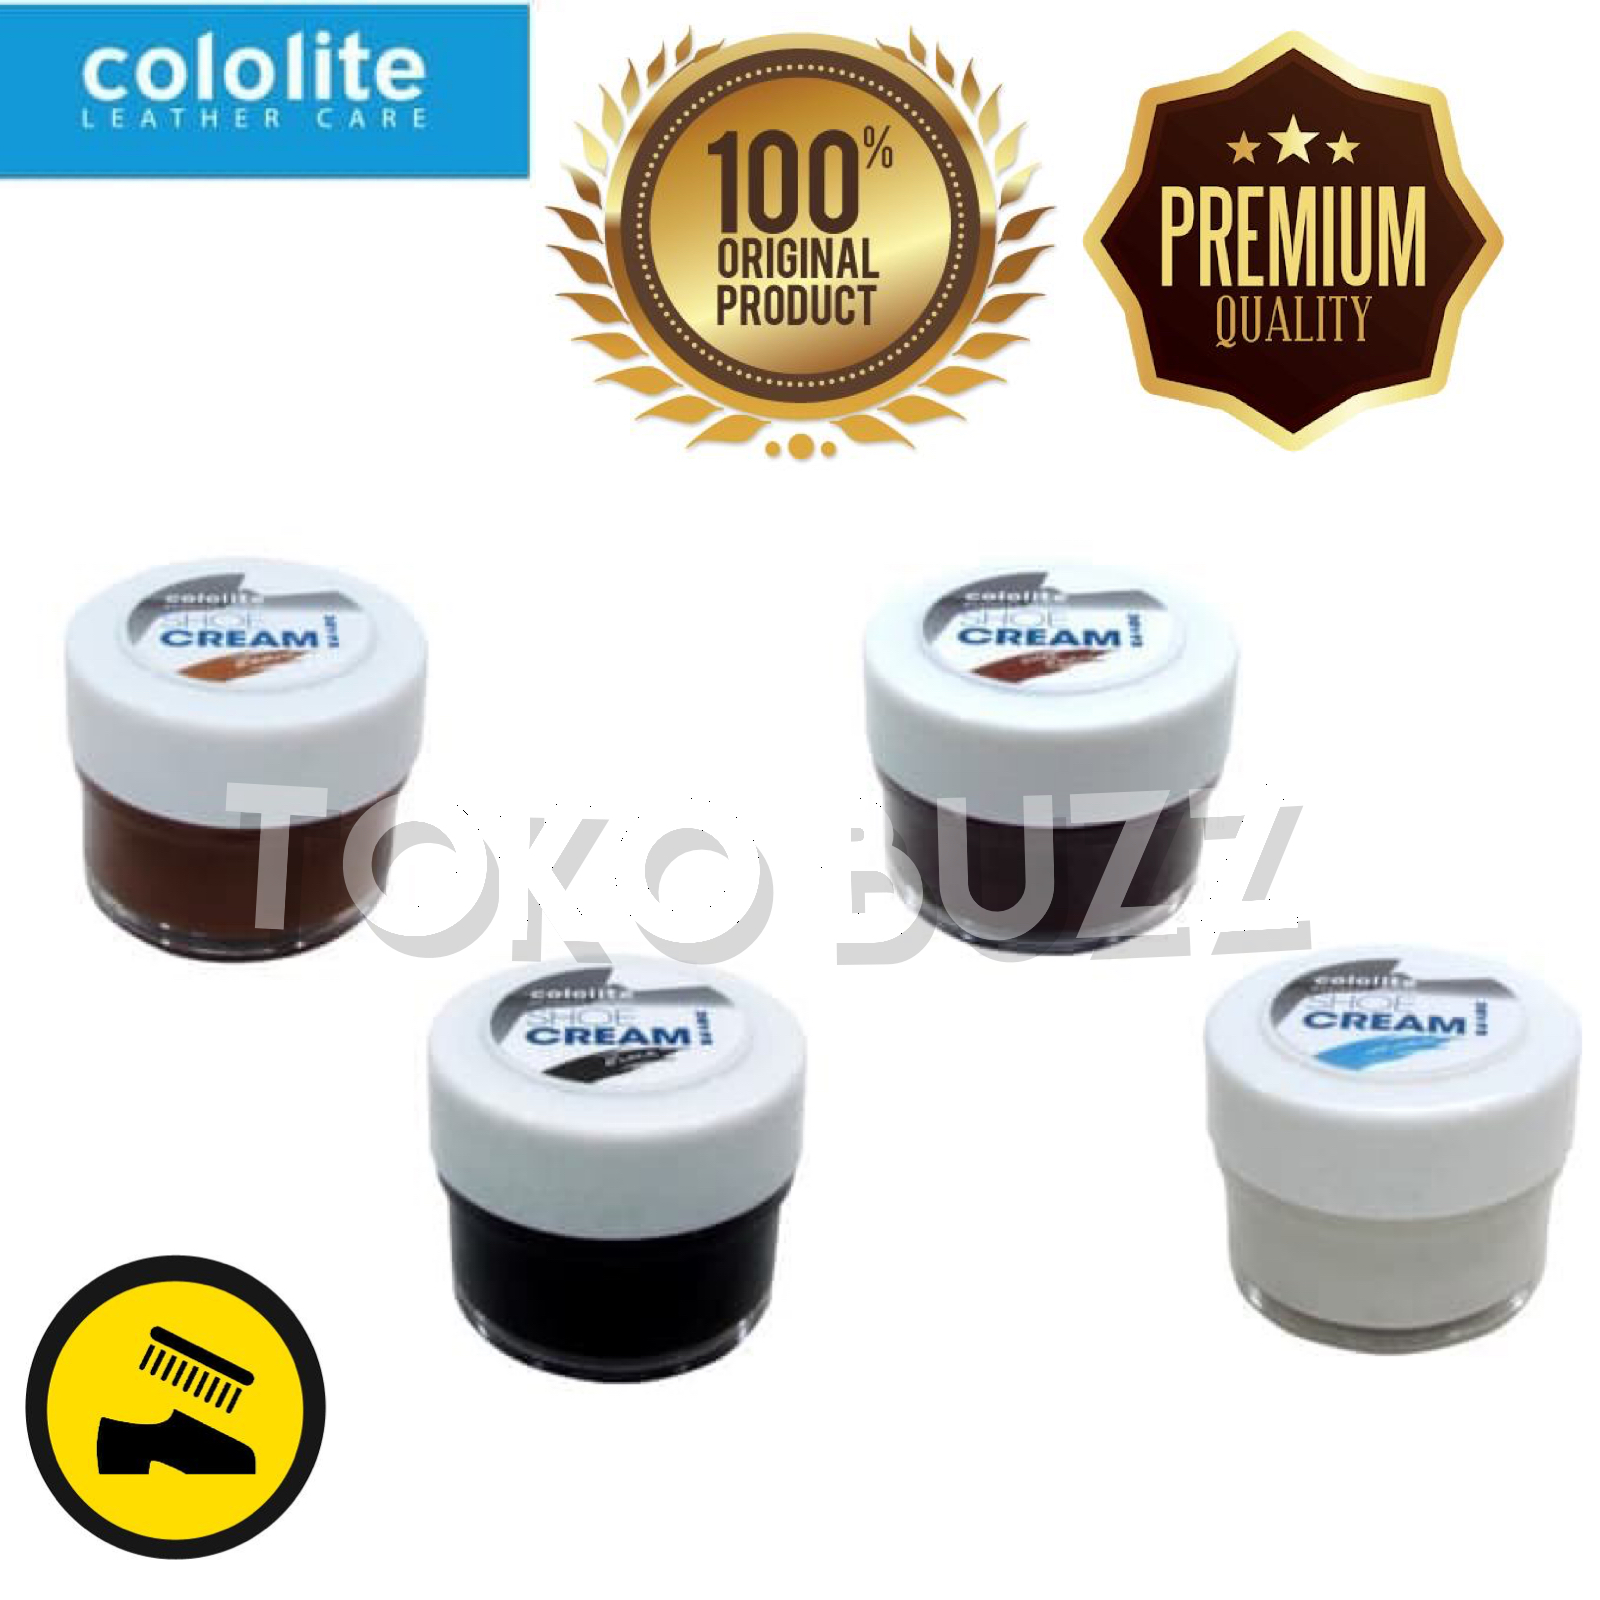 Cek Harga Cololite Liquid Shoe Polish 45 Cc Brown Bulan Ini. Source · 154731428988478_50f927e9-